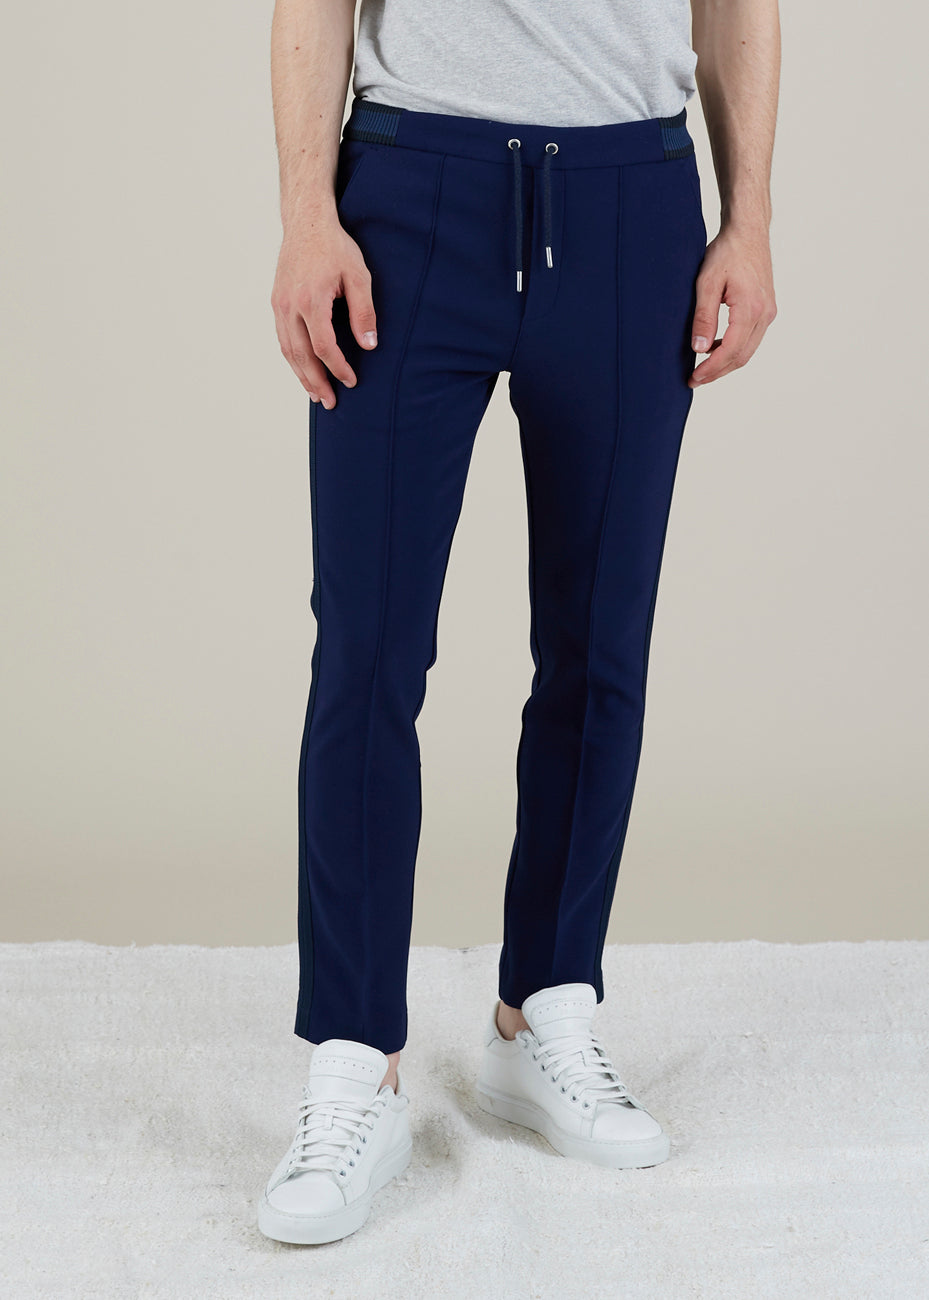 Commune de Paris GN Starter Pant